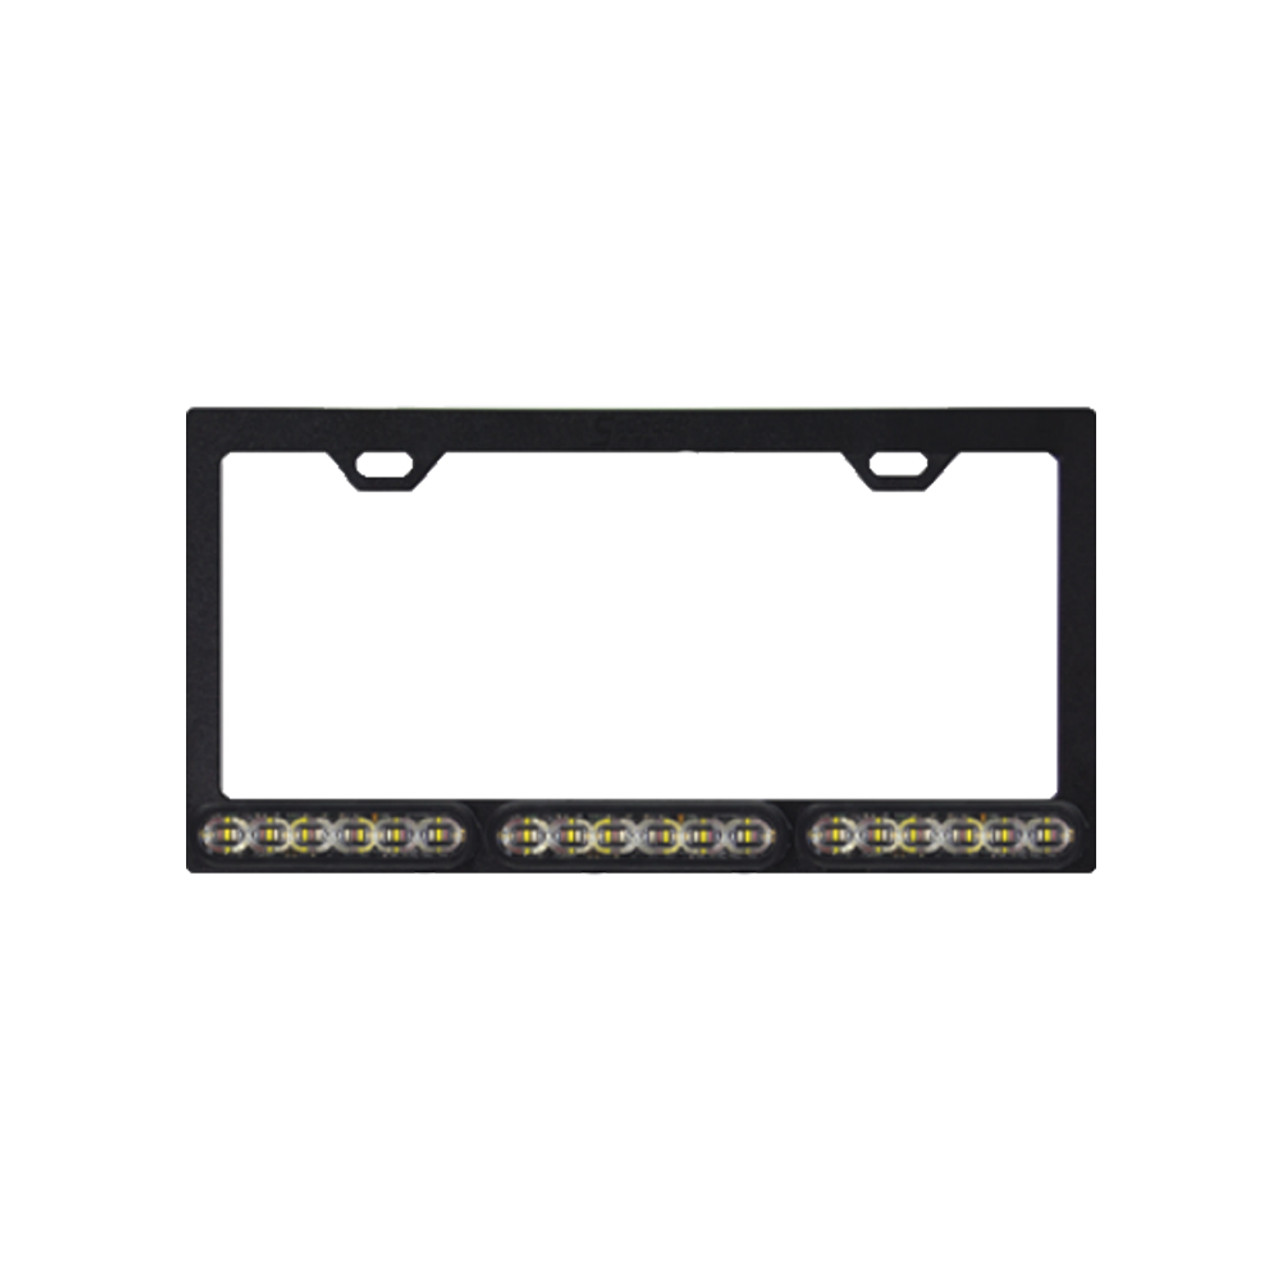 SoundOff mpower 4 Inch Quick Mount License Plate Frame, choose single 6-LED or dual 12-LED Color Lights